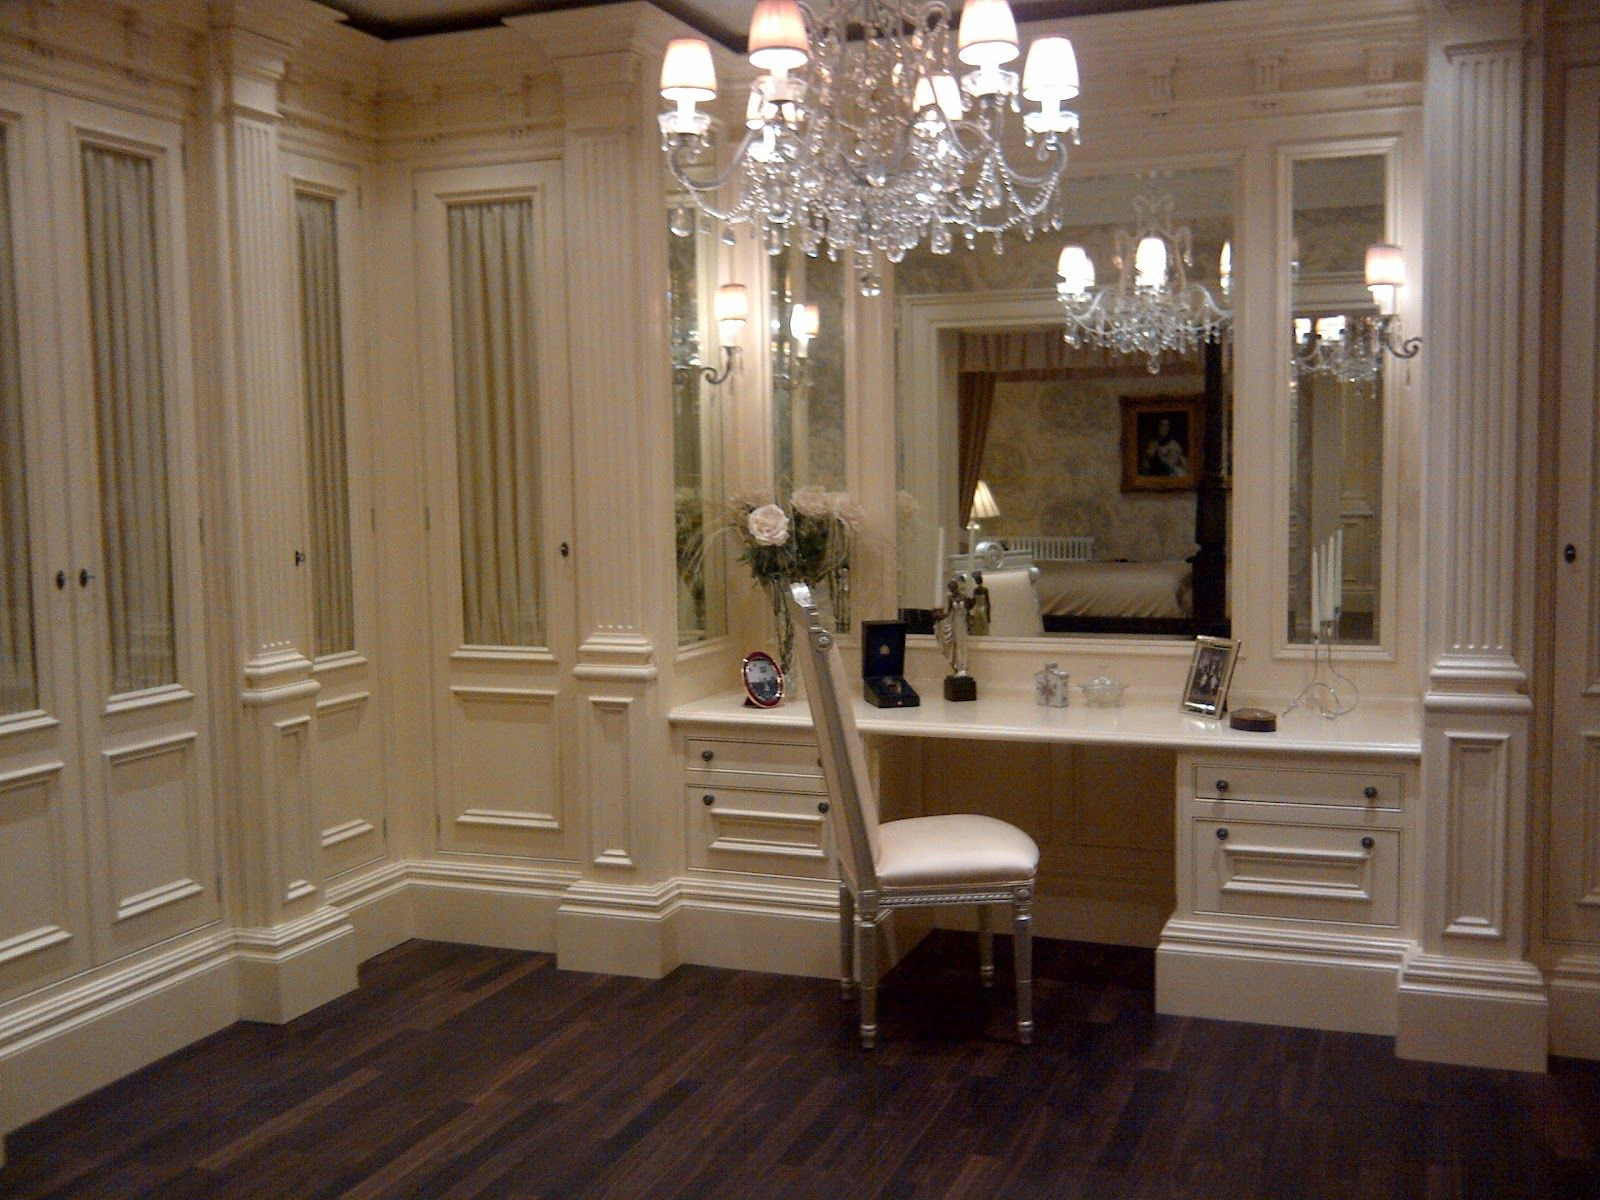 Clive Christian Kitchens Showrooms Glass Fronted Robes With Clive Christian Monogram Silk